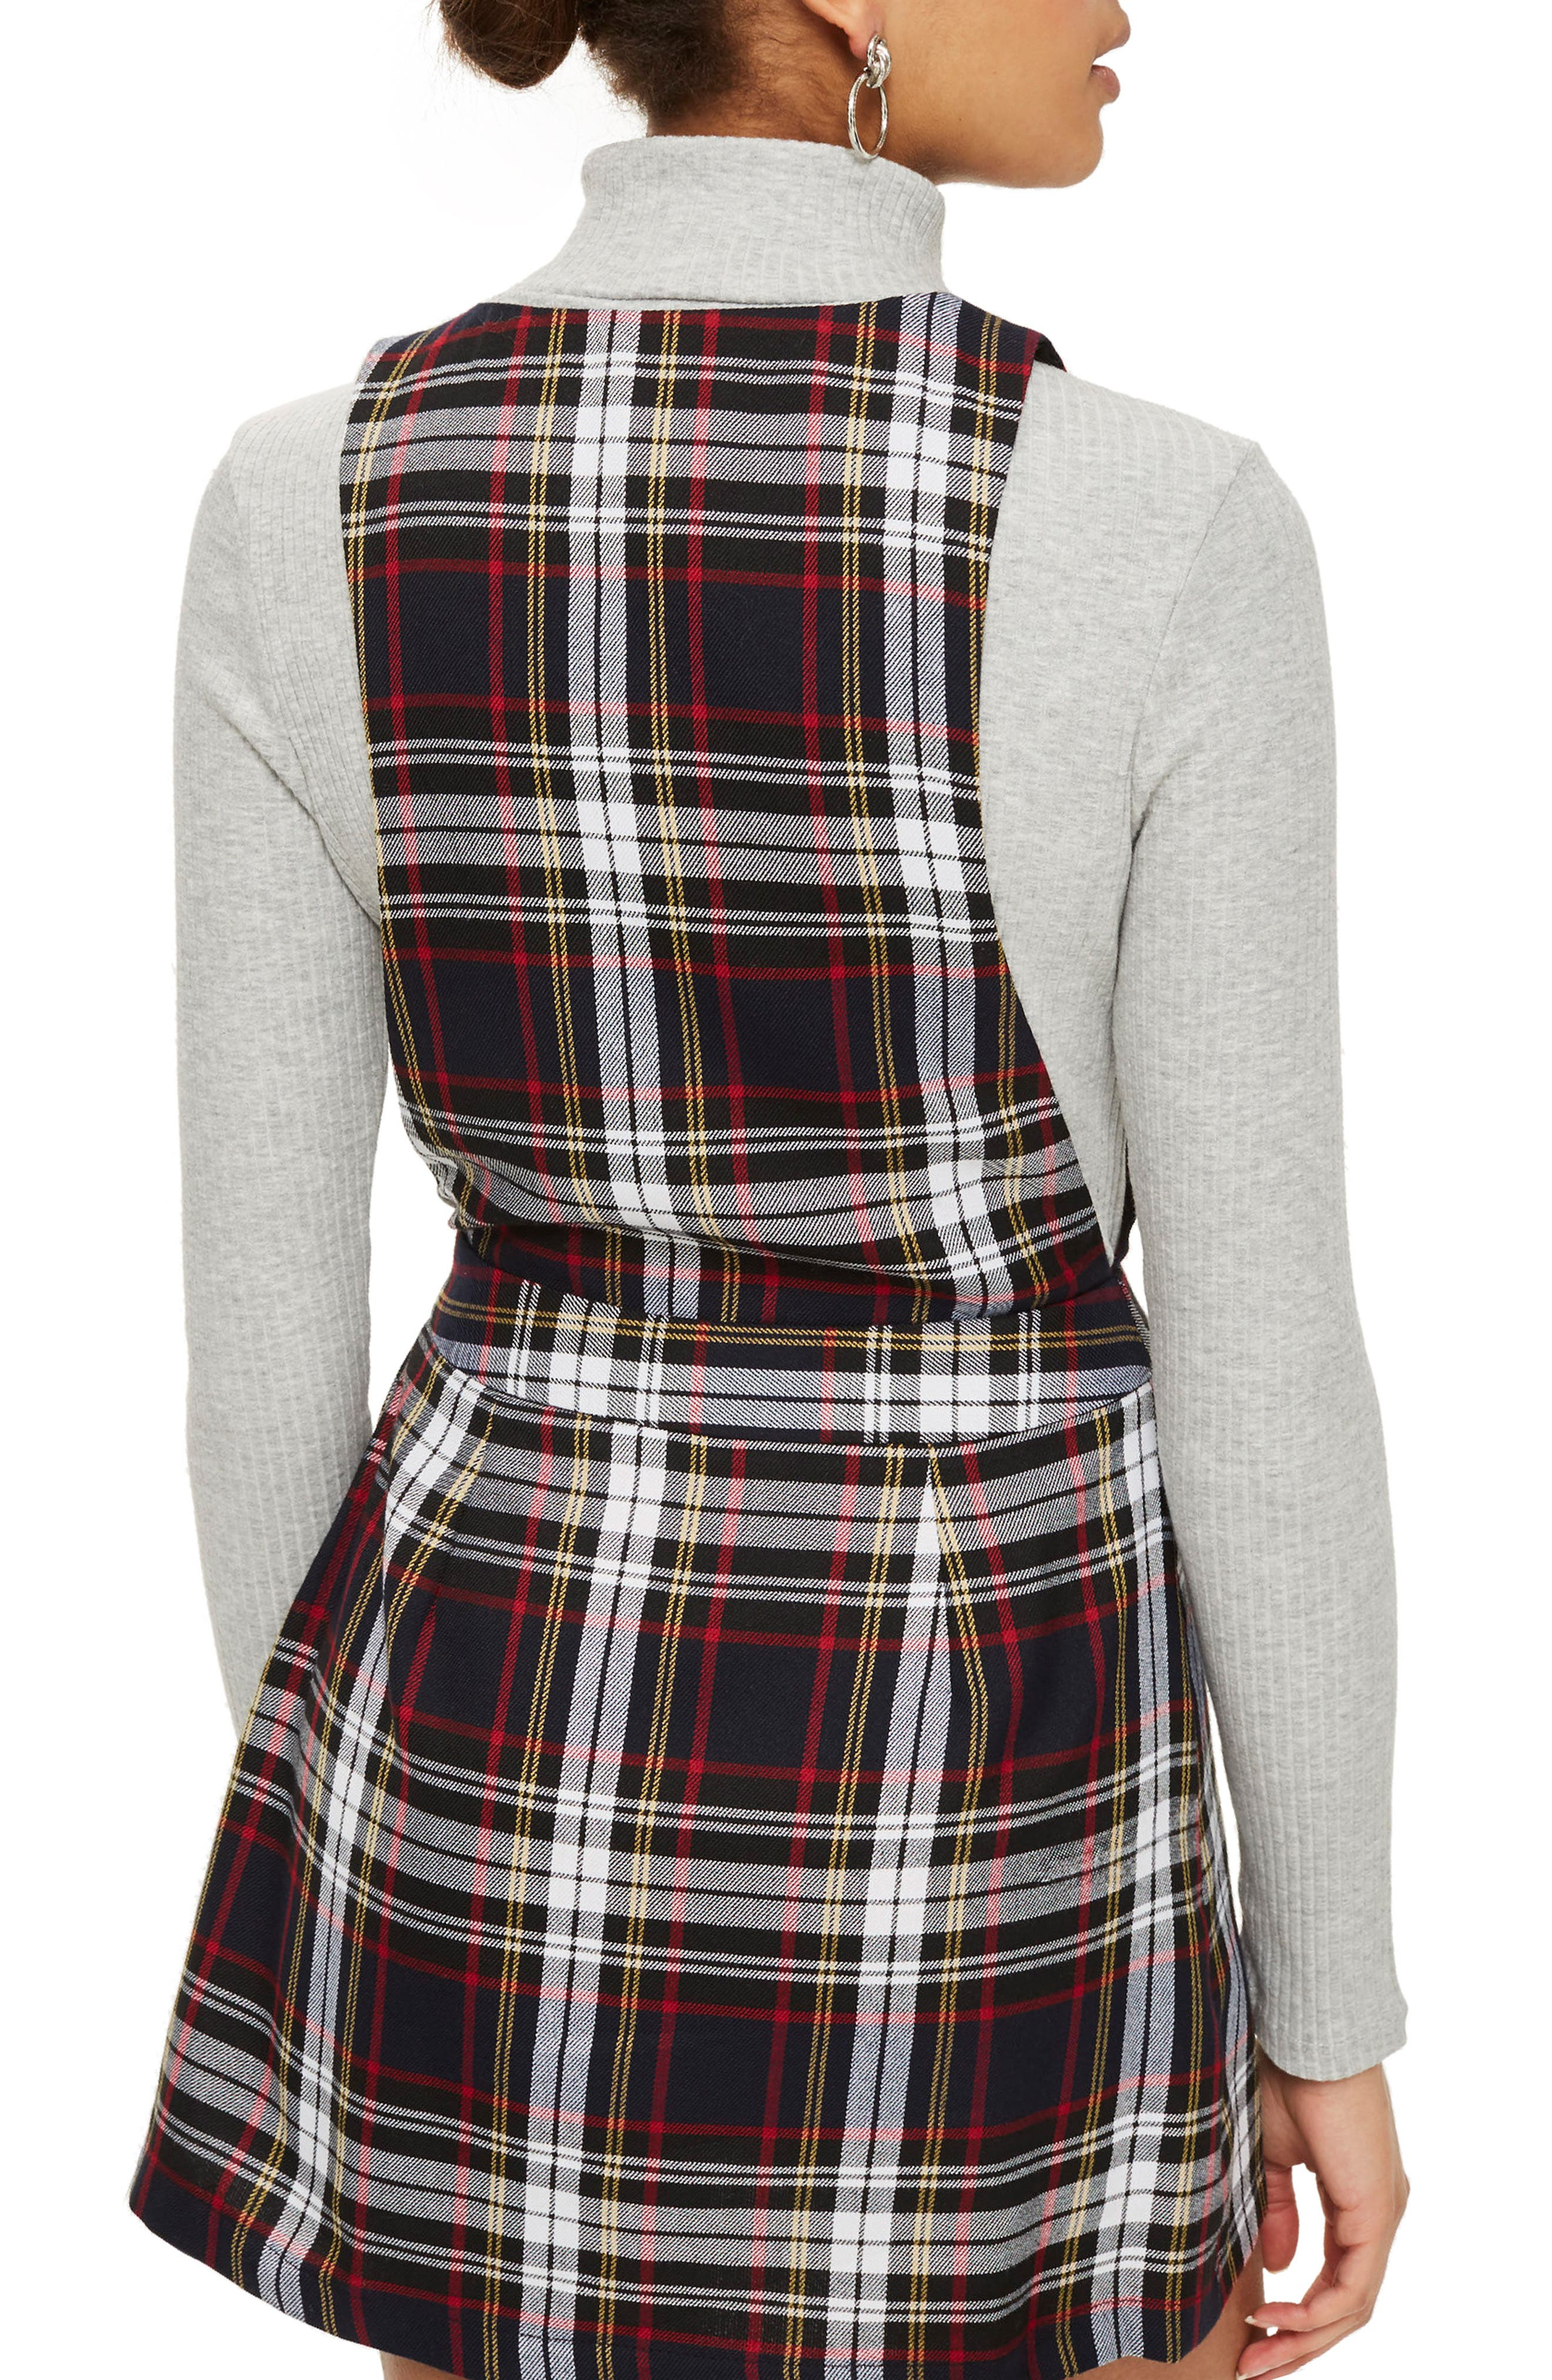 Tartan Pinafore Minidress,                             Alternate thumbnail 2, color,                             Black Multi